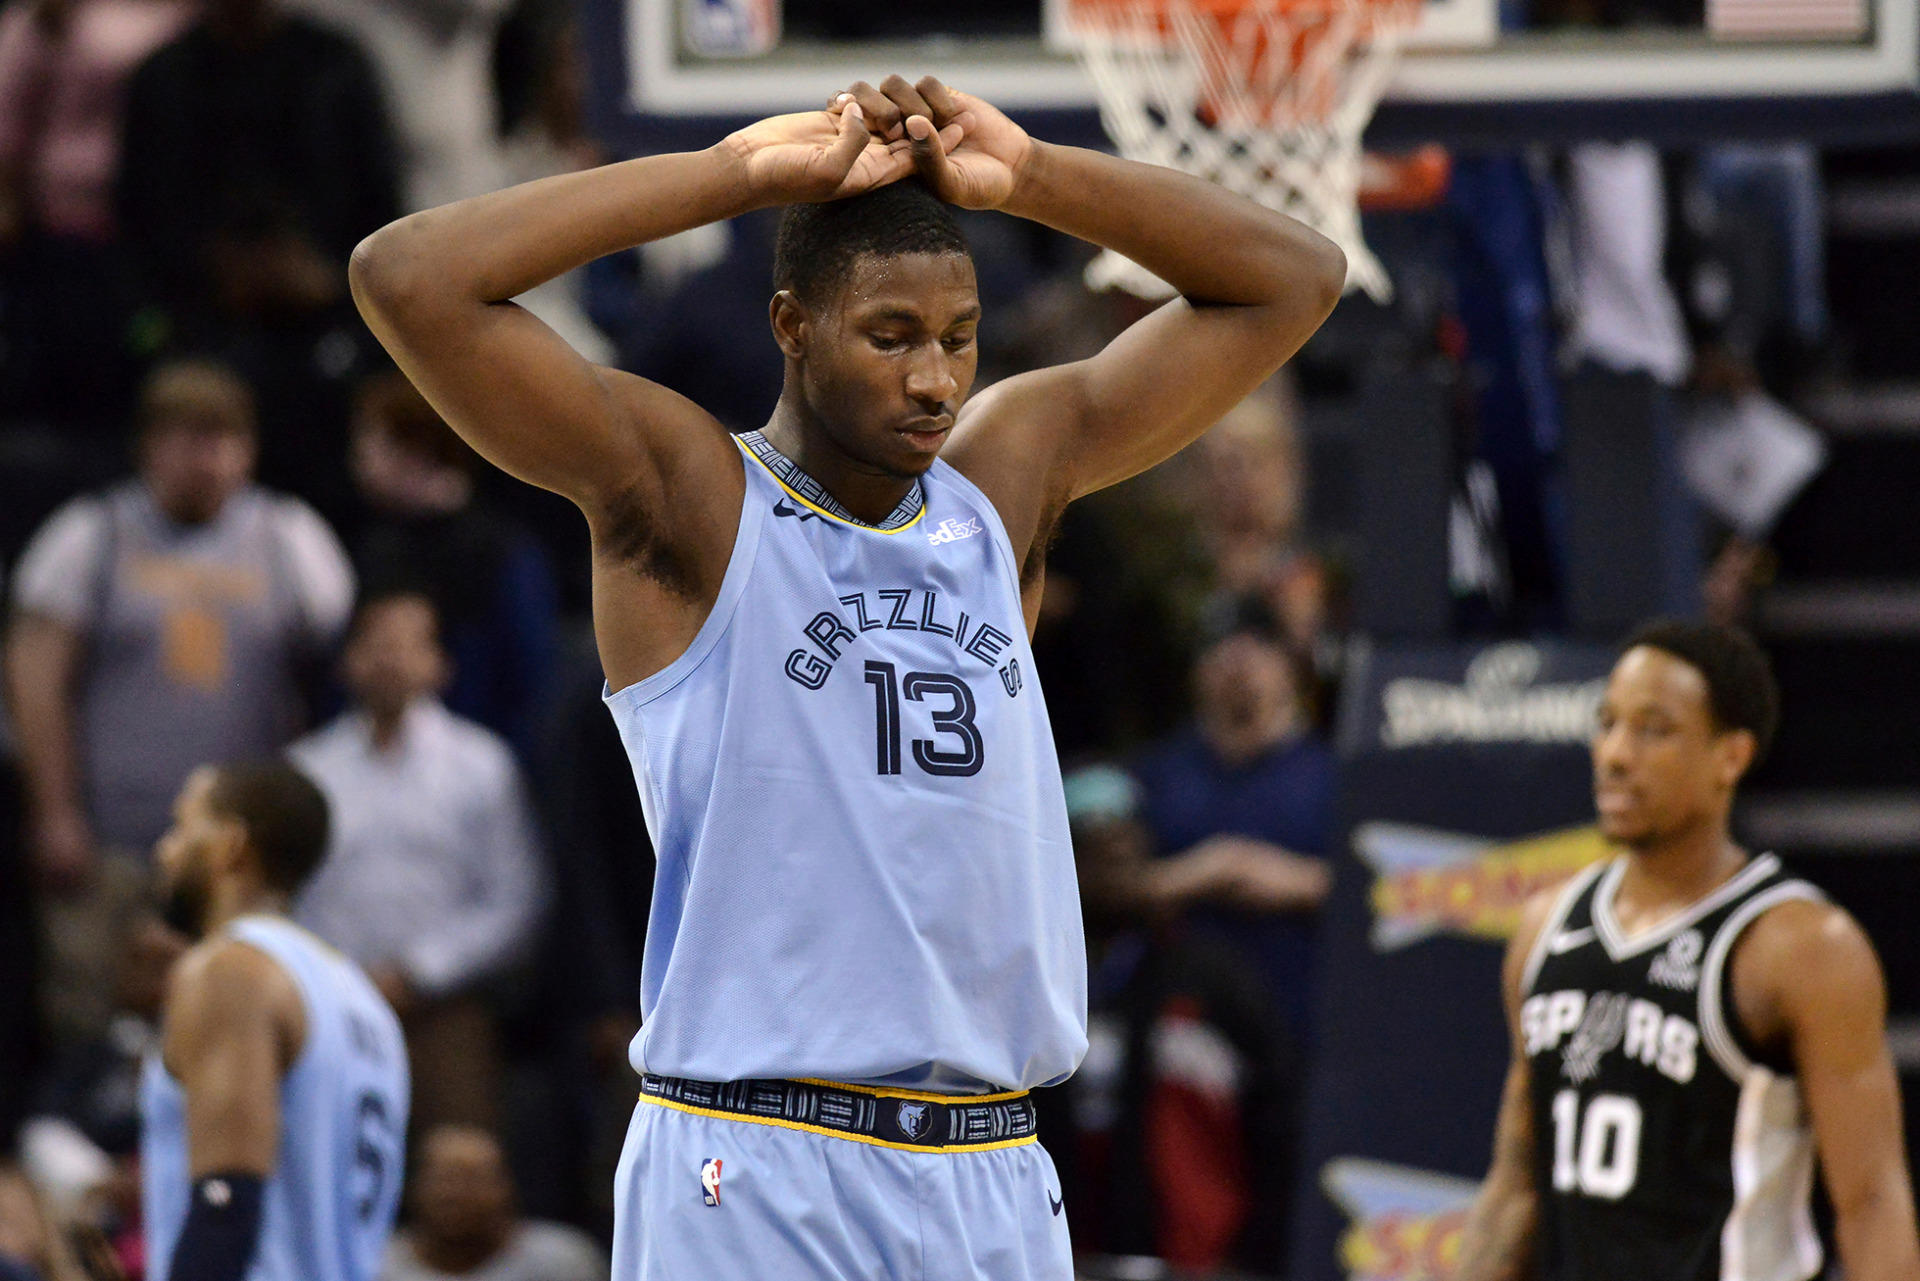 <strong>Memphis Grizzlies forward Jaren Jackson Jr. (13) stands on the court in the second half of an NBA basketball game against the San Antonio Spurs Tuesday, Feb. 12, 2019, in Memphis, Tenn.</strong><span>&nbsp;(AP Photo/Brandon Dill)</span>